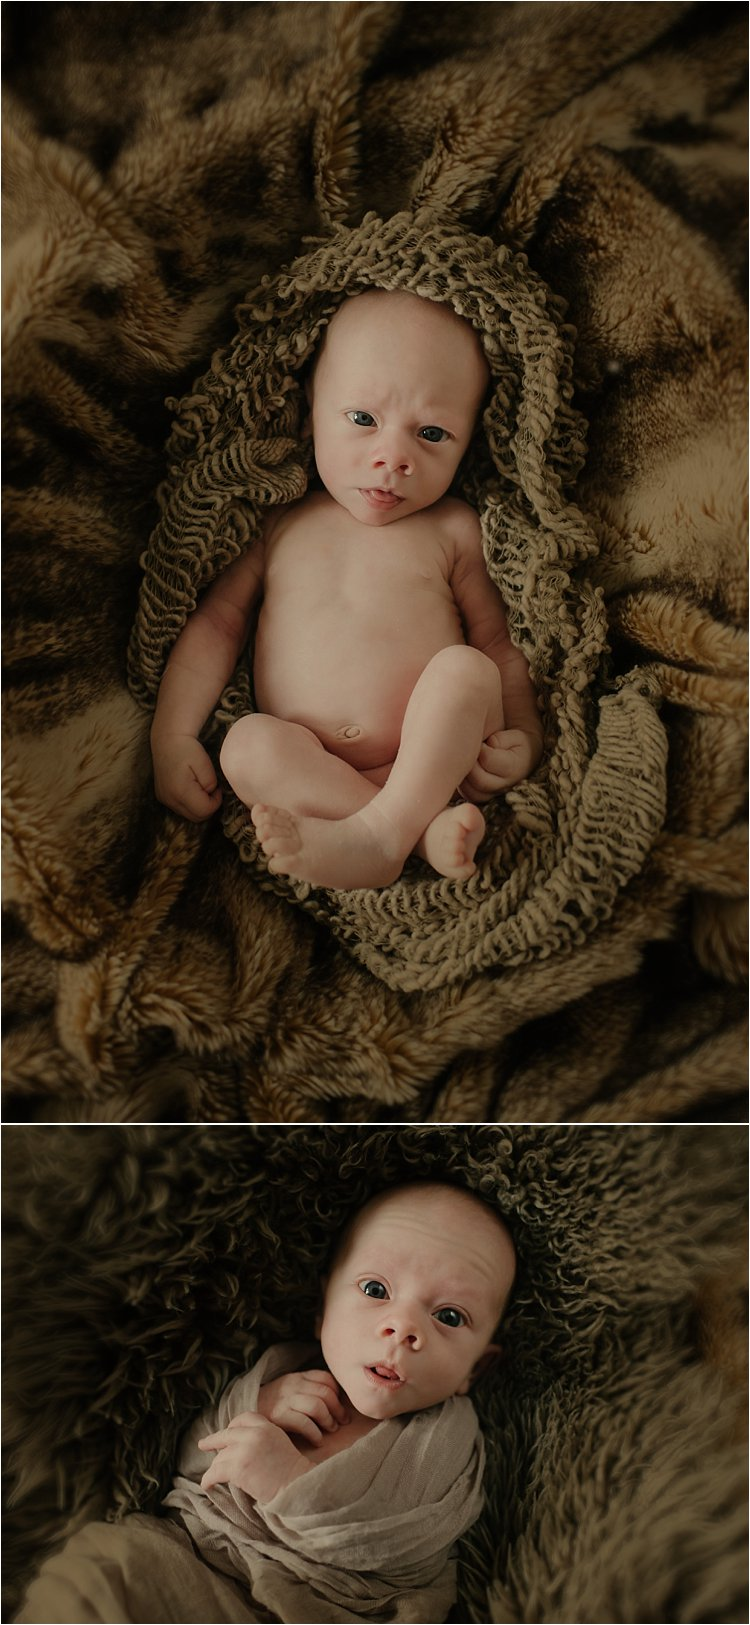 london-newborn-baby-photographer-family-children-photoshoot-luly-sawyer-photo